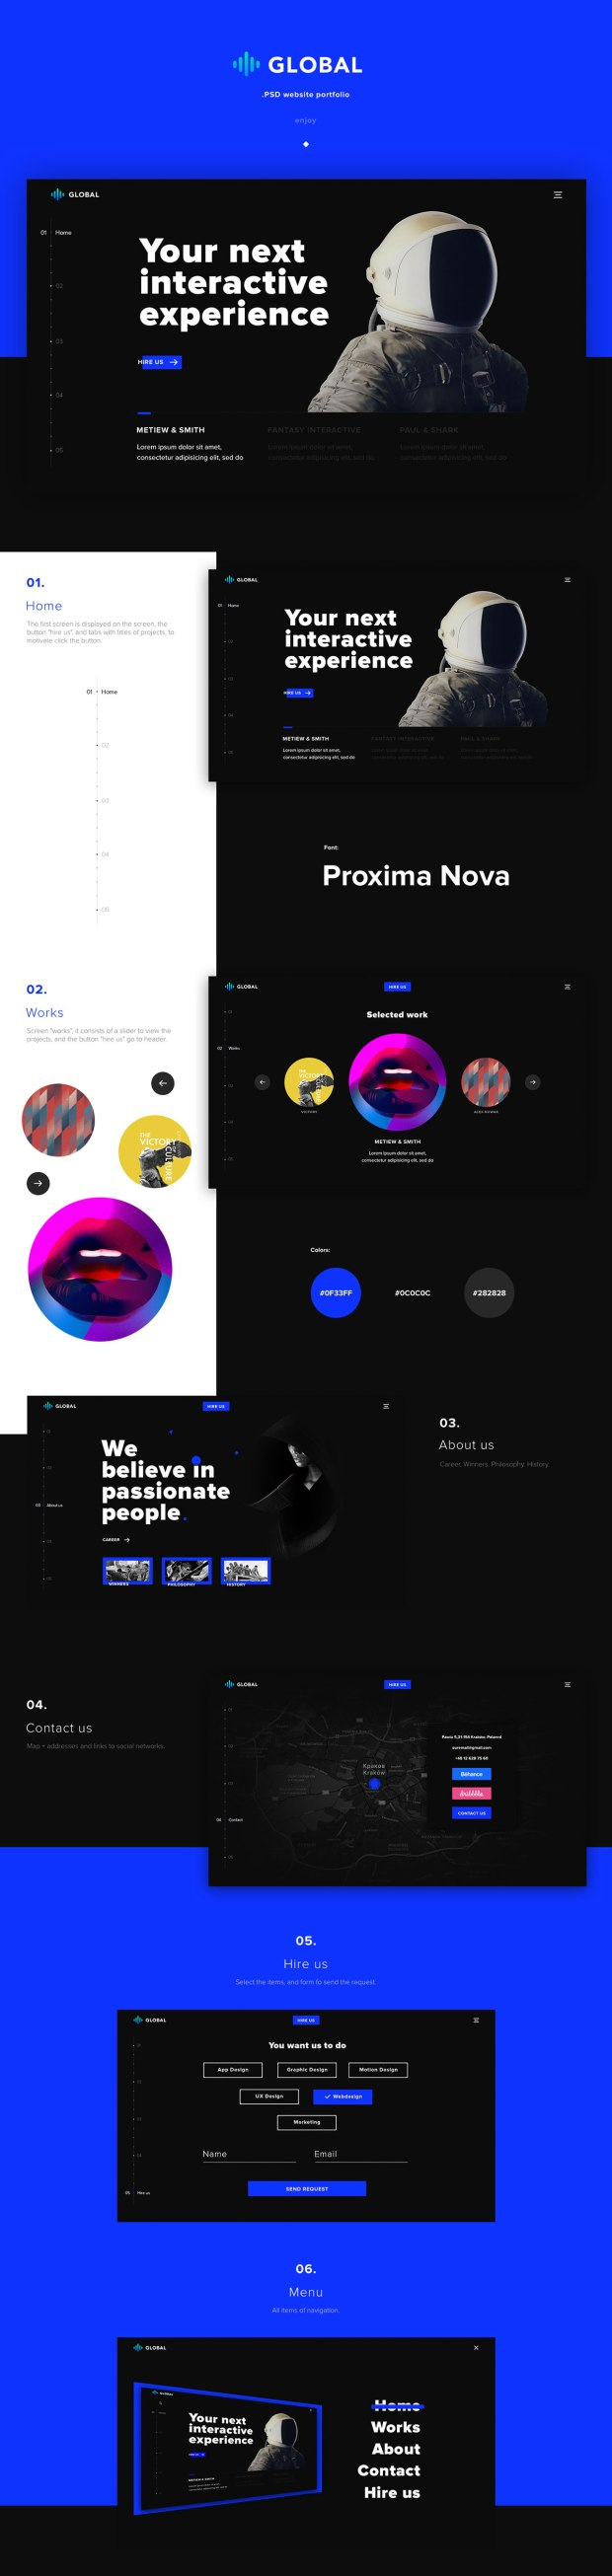 Global - Free PSD and HTML Website Template